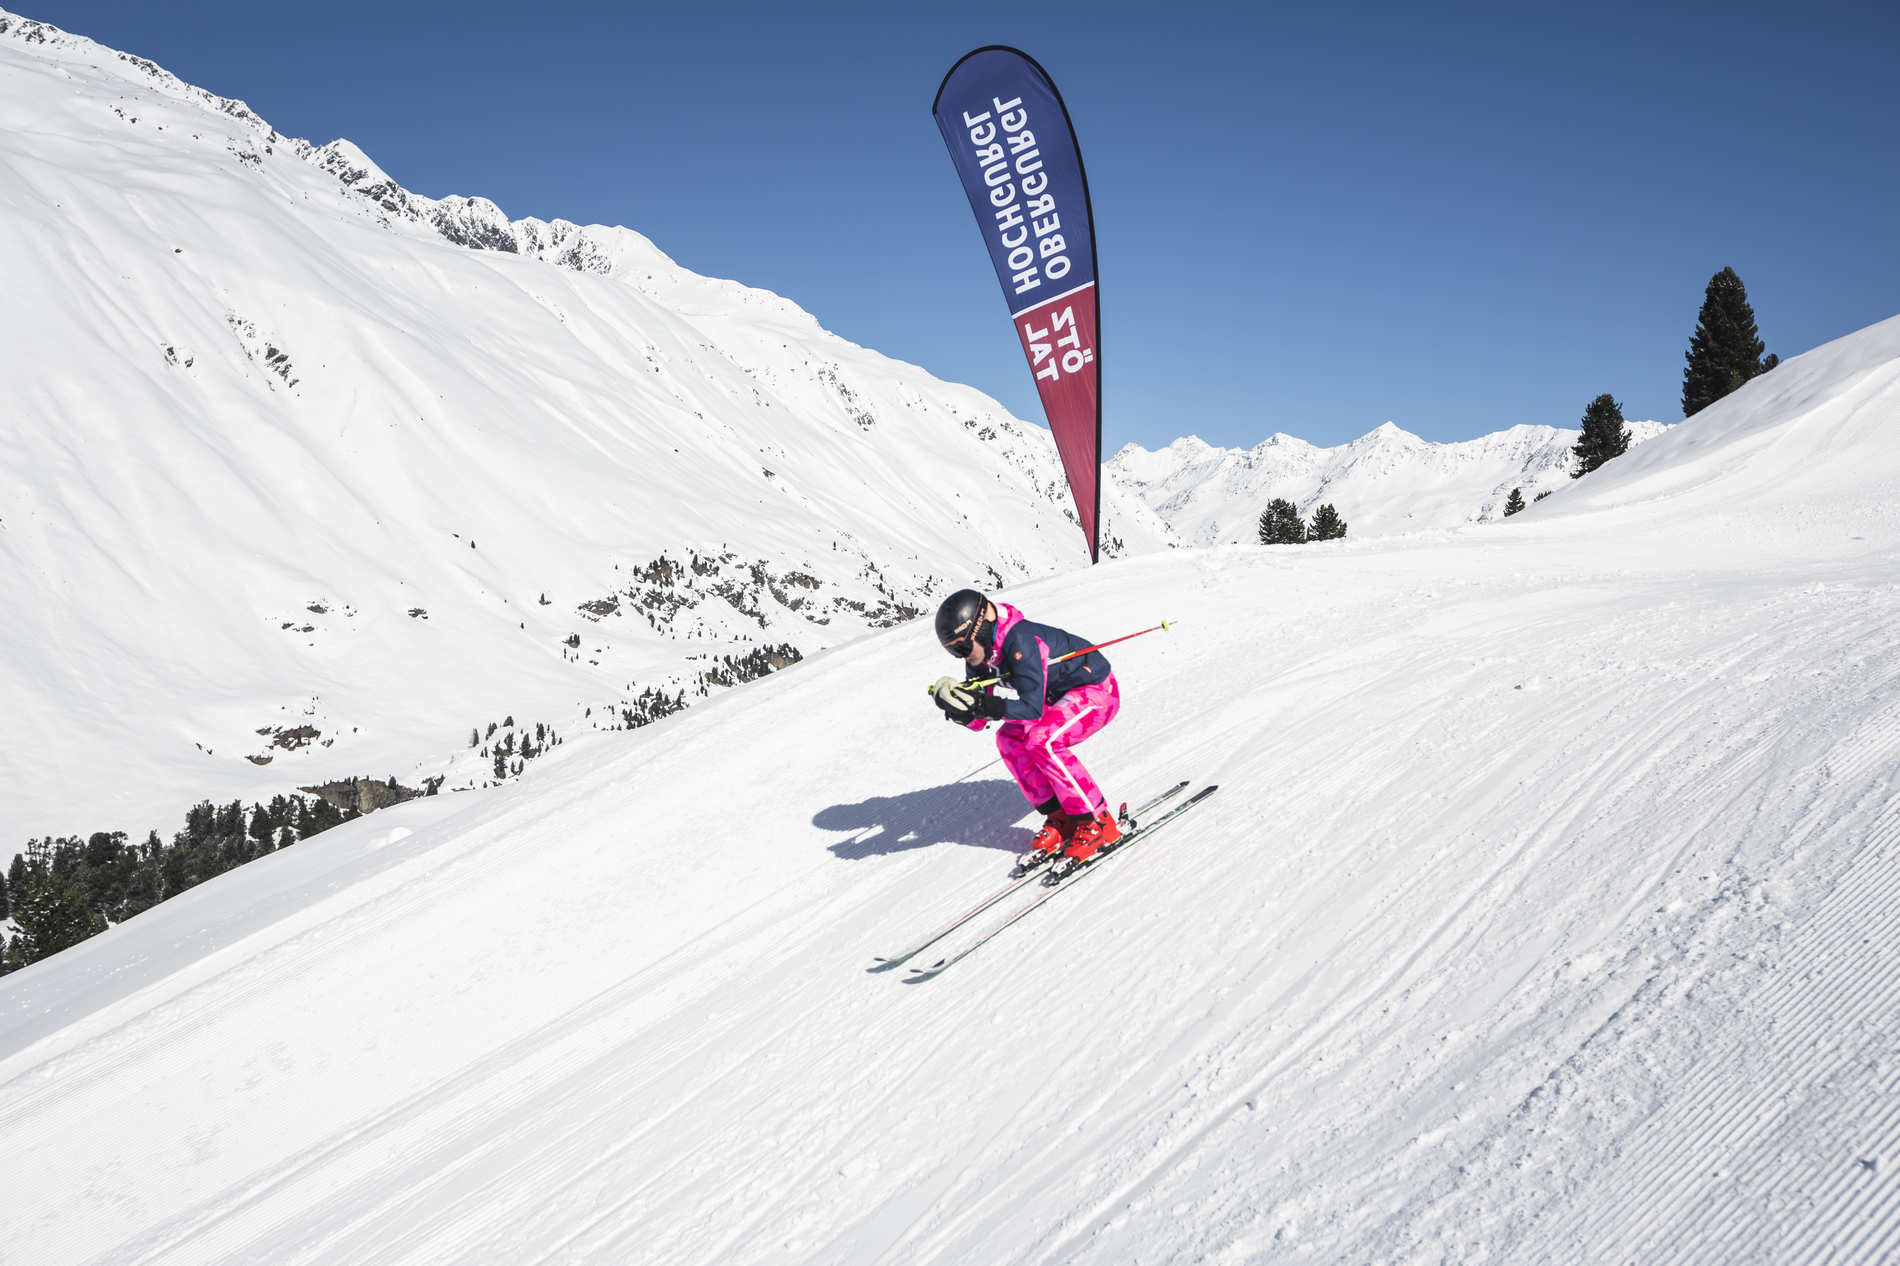 obergurgl 08 03 2018 action roland haschka qparks 019